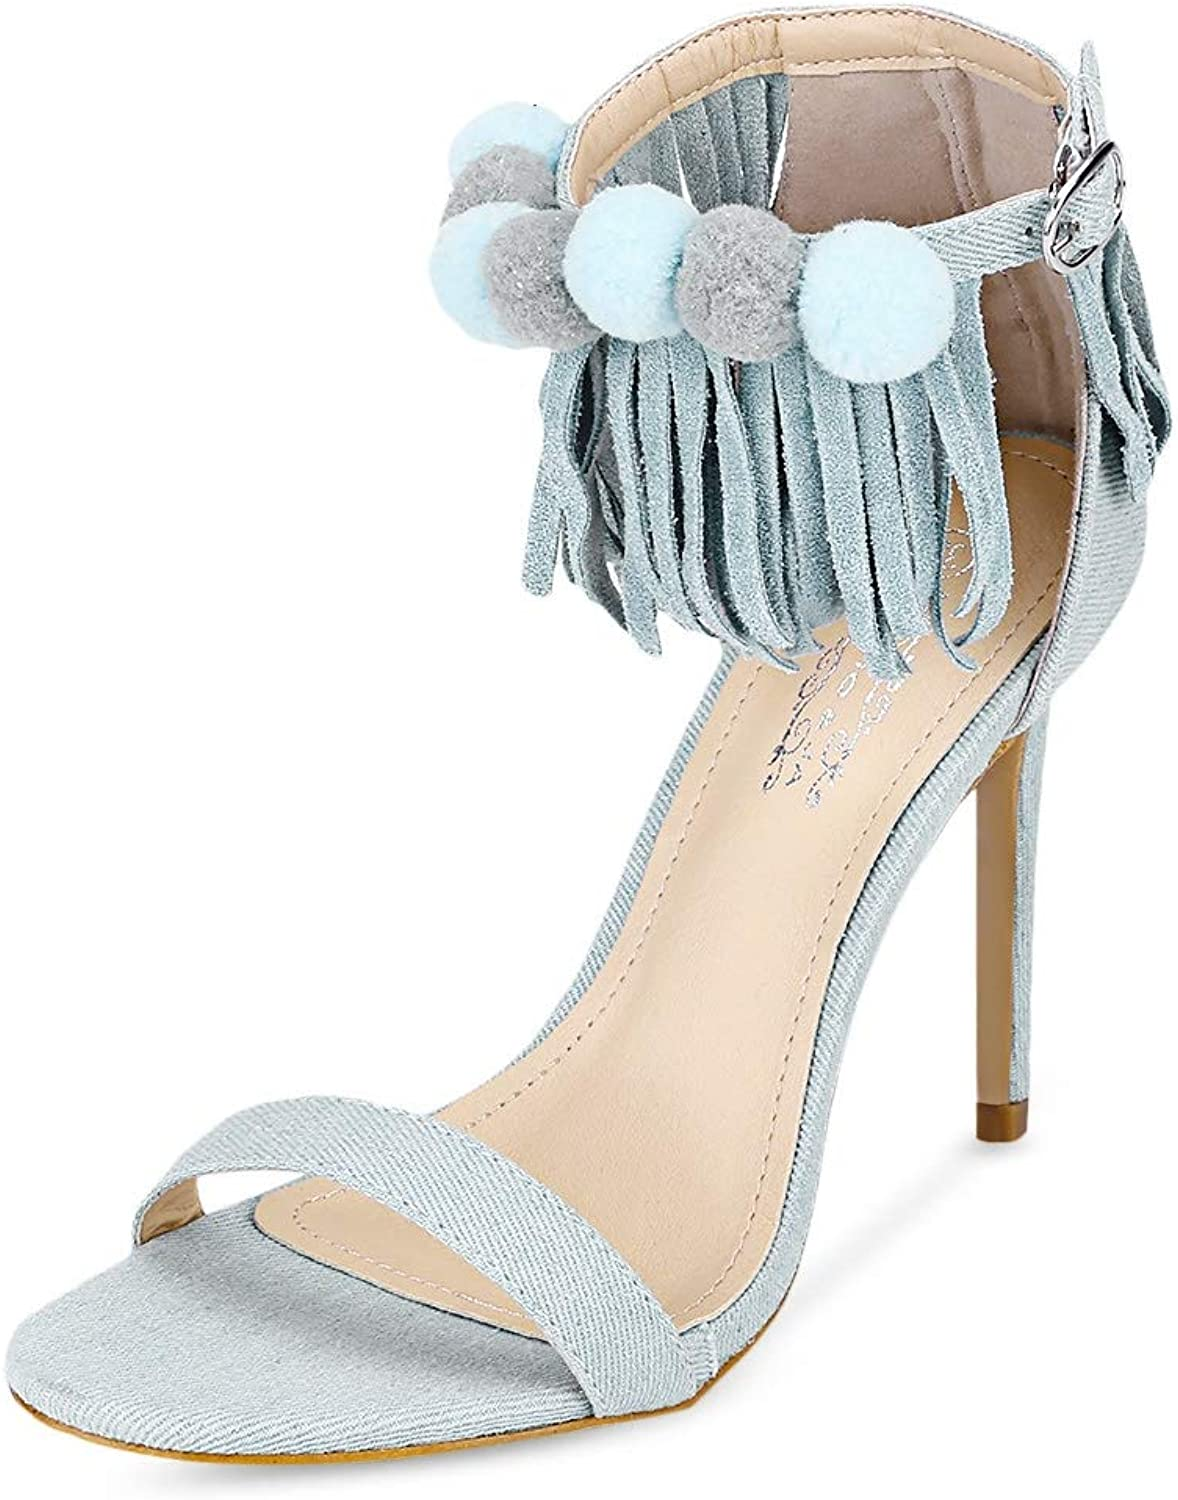 KCatsy Trendy Open Toe Fringed Ankle Strap Pompon Stiletto Heel Women Sandals